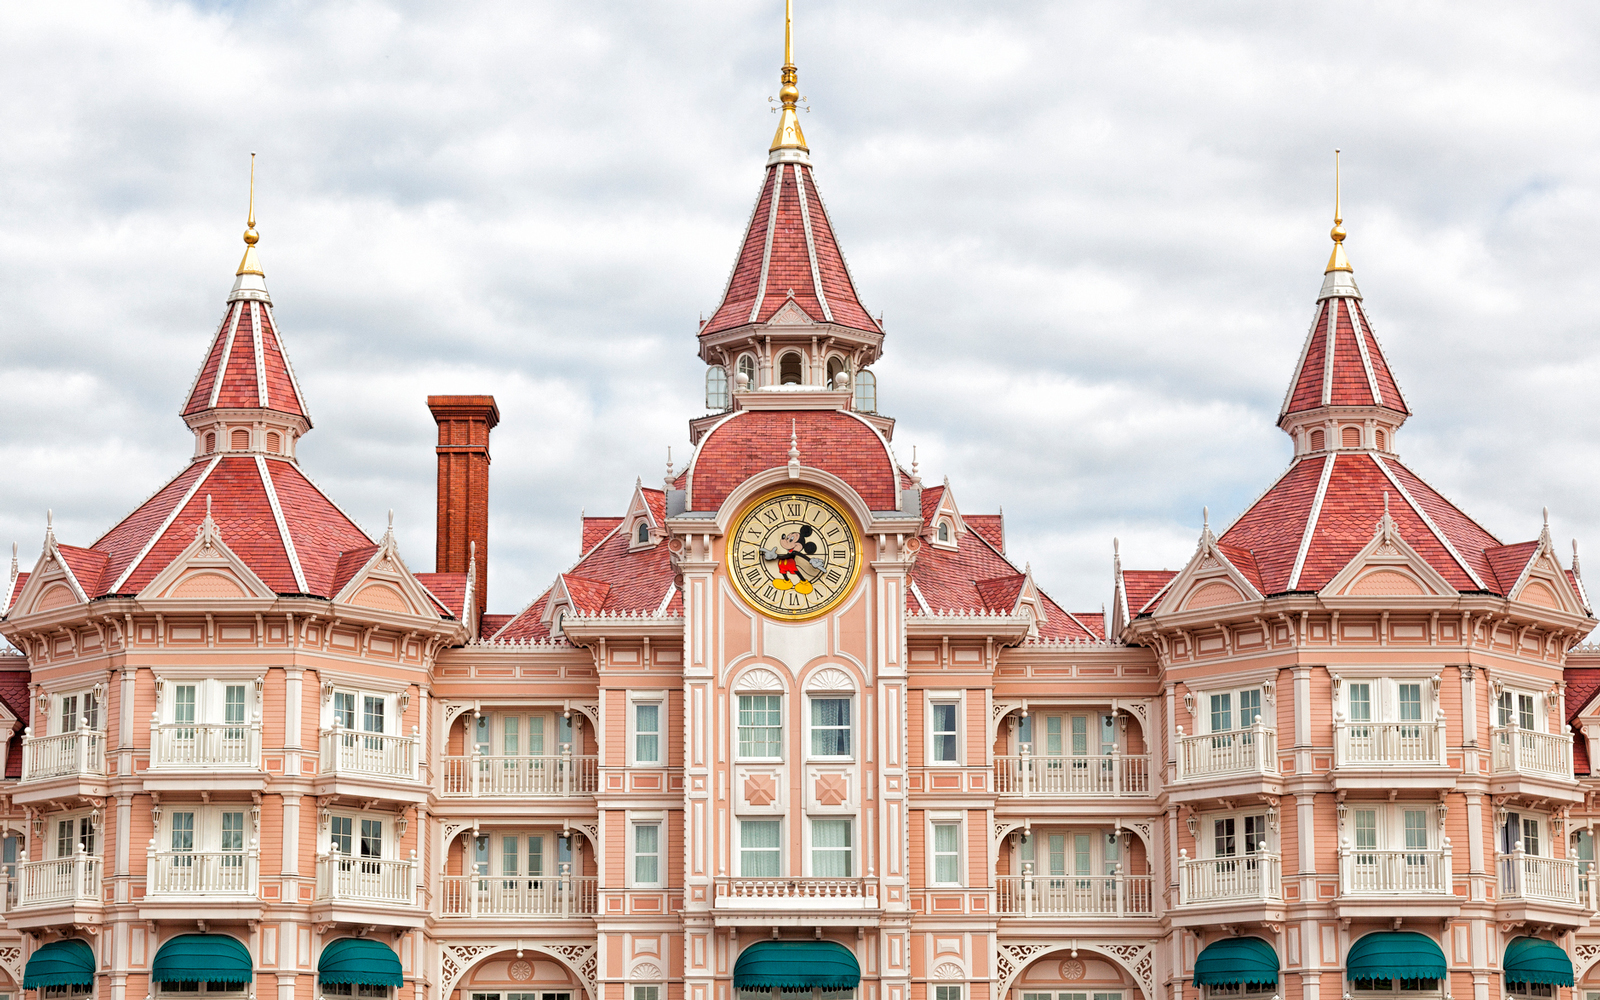 Disneyland hotel, Paris